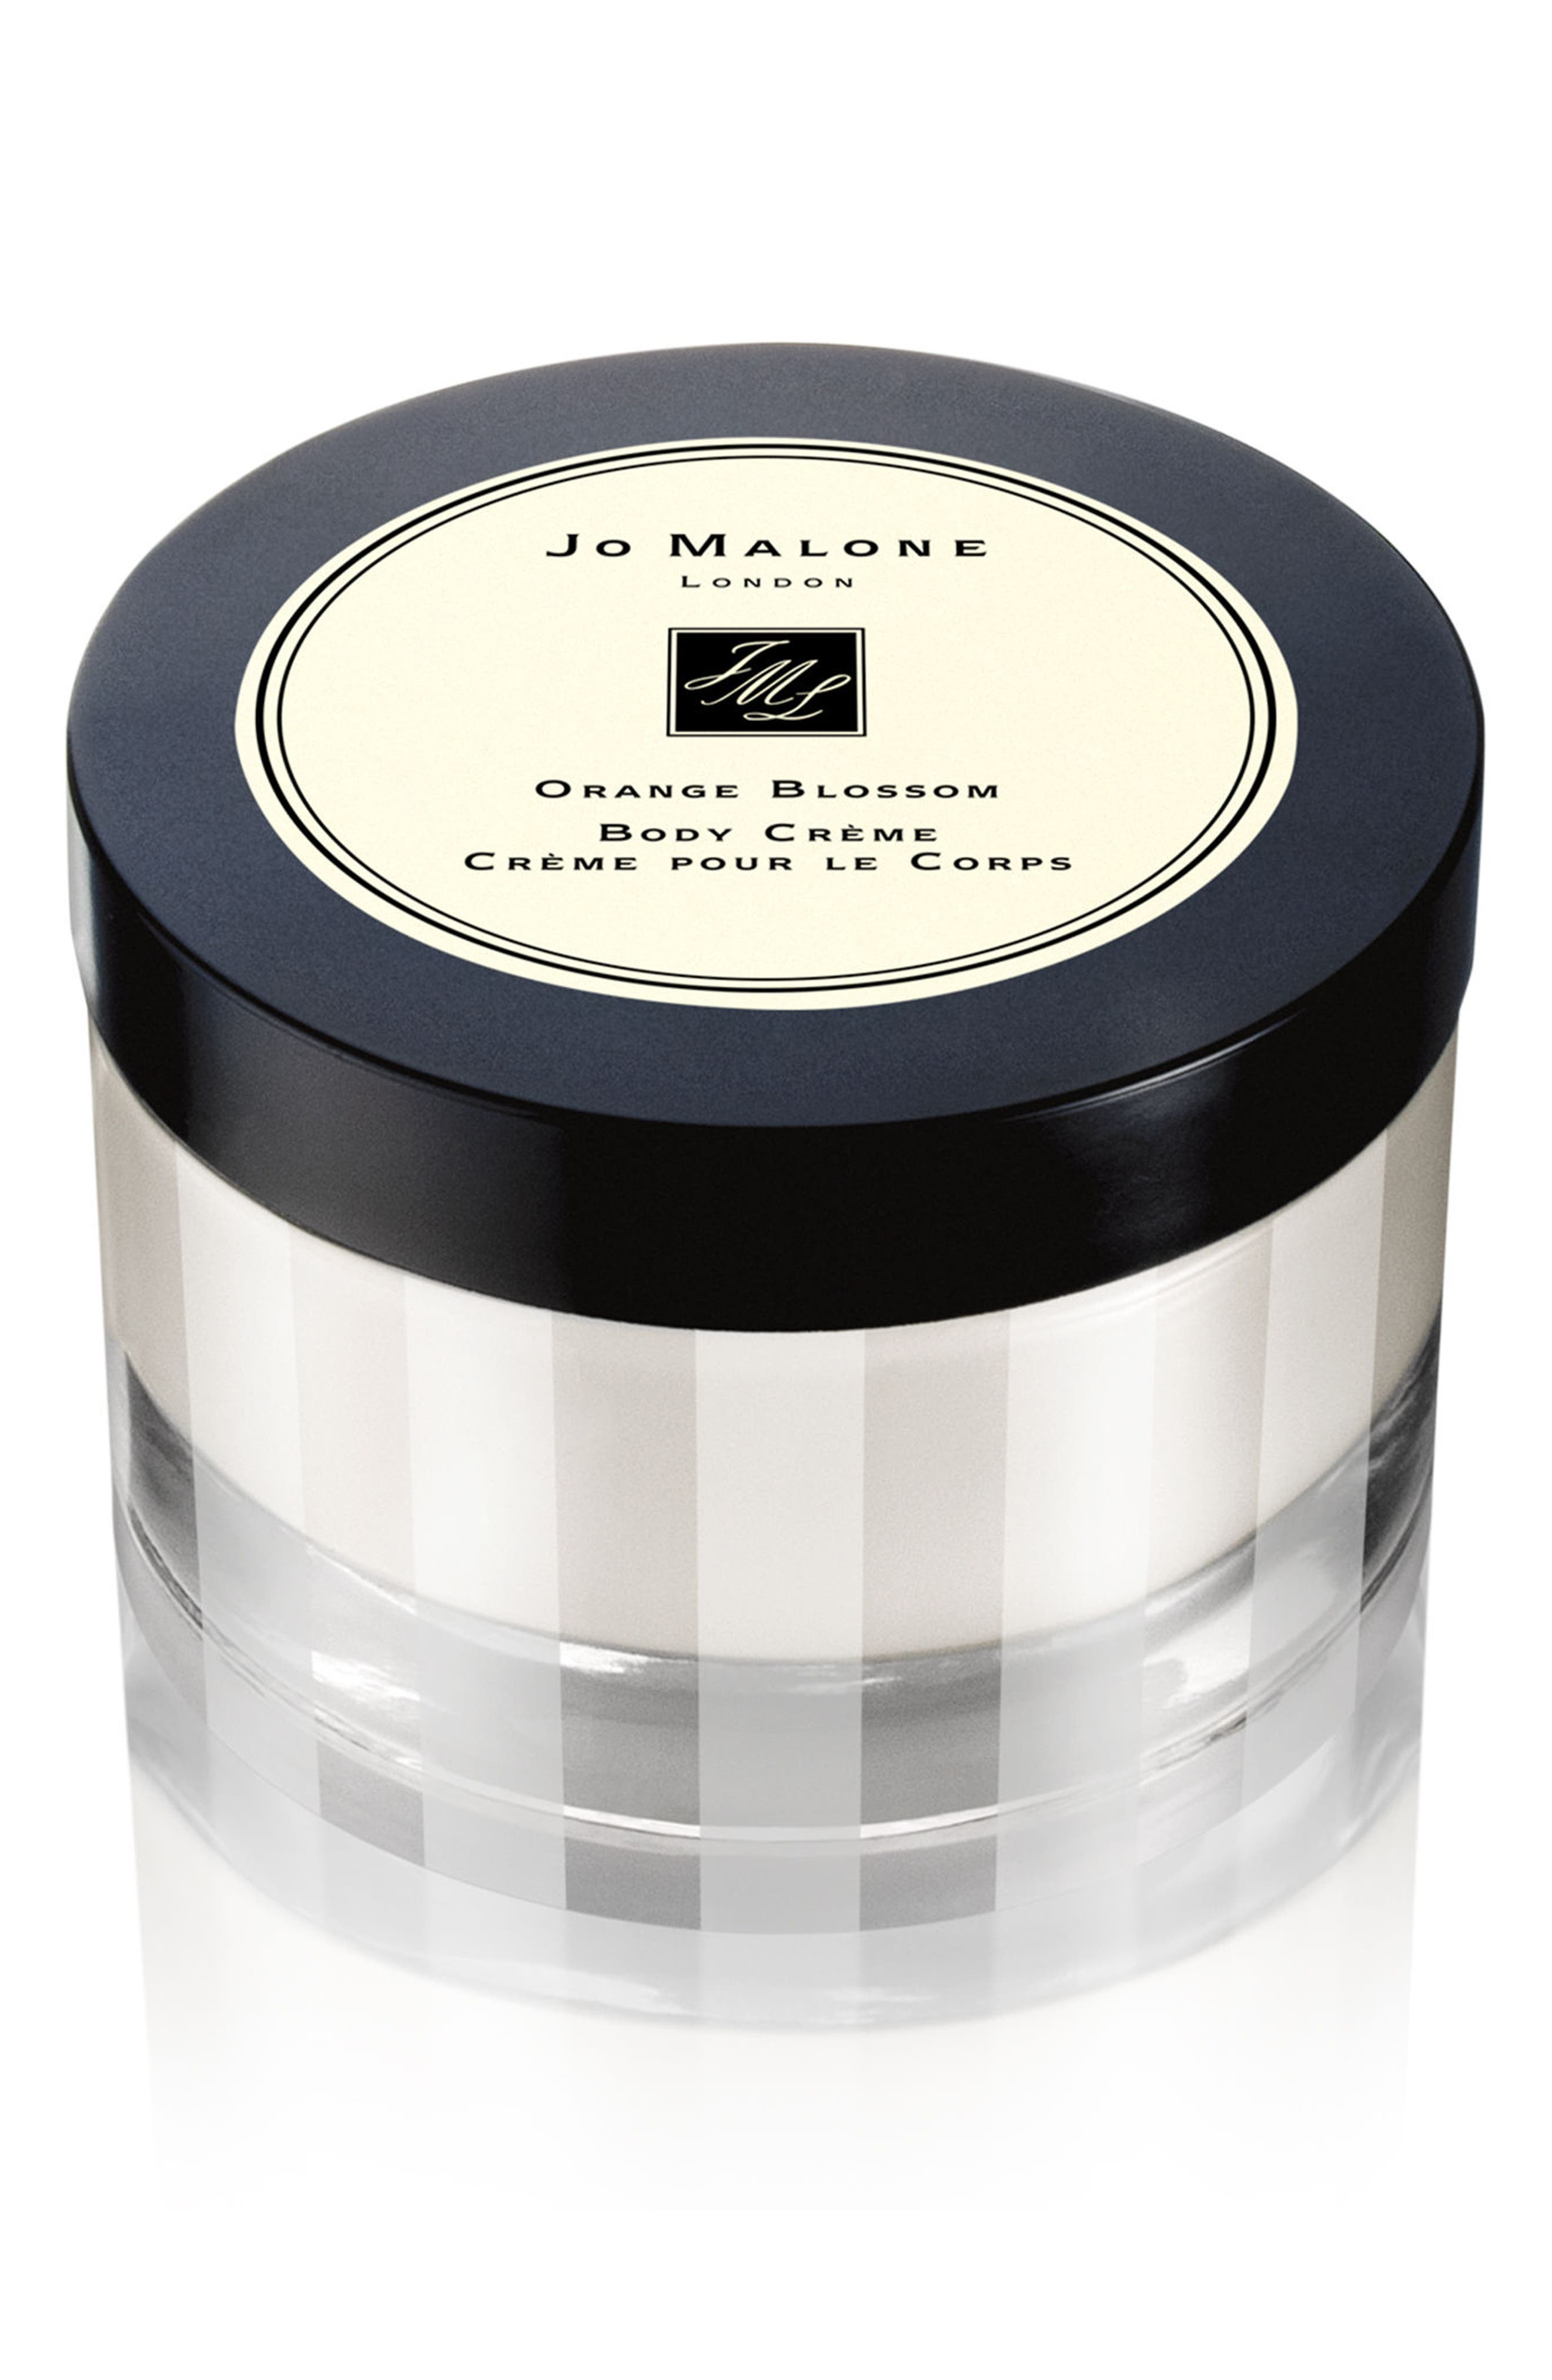 Jo Malone London™ Orange Blossom Body Crème